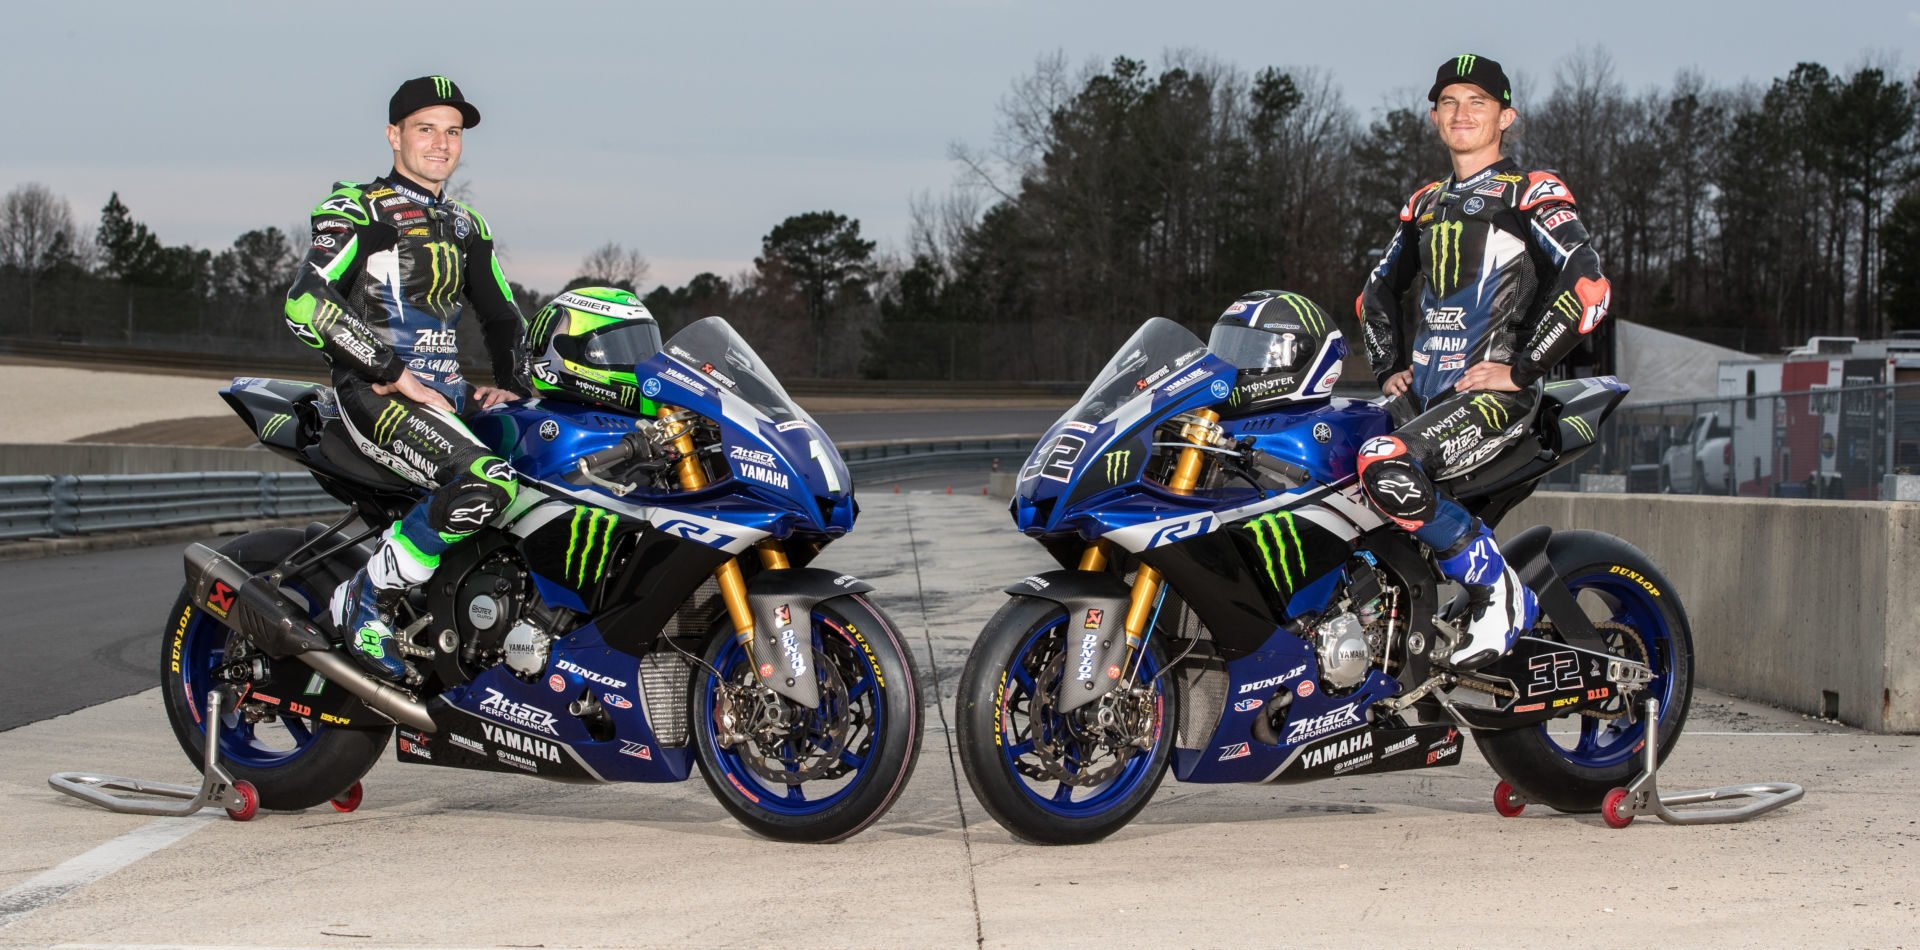 Monster Energy Attack Performance Yamaha's Cameron Beaubier (left) and Jake Gagne (right). Photo courtesy of Yamaha.